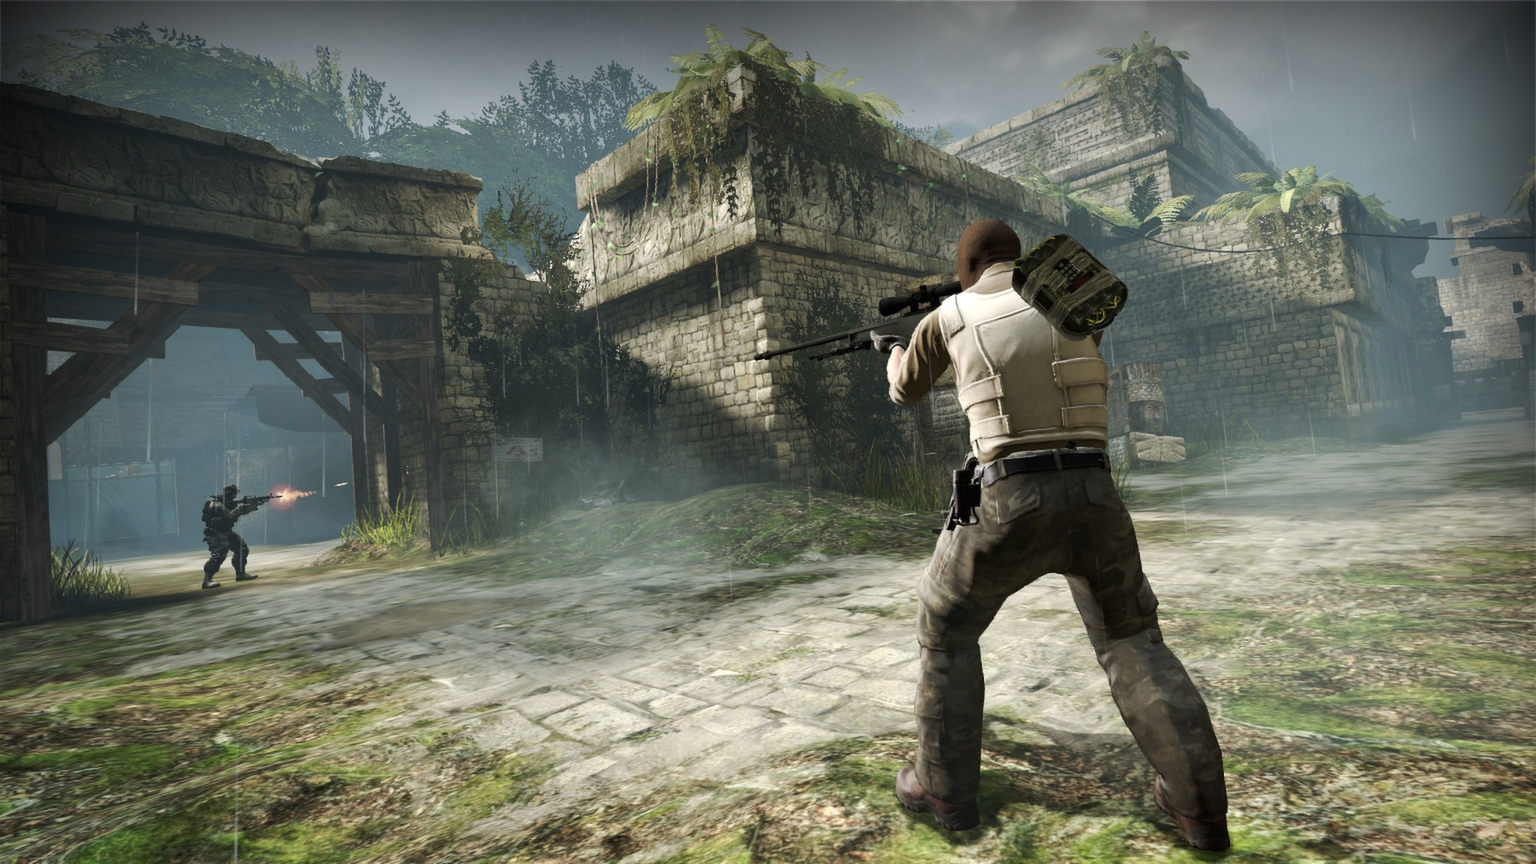 Counter-Strike Pro Banned For Cheating, Now Regrets Ever Playing The Game